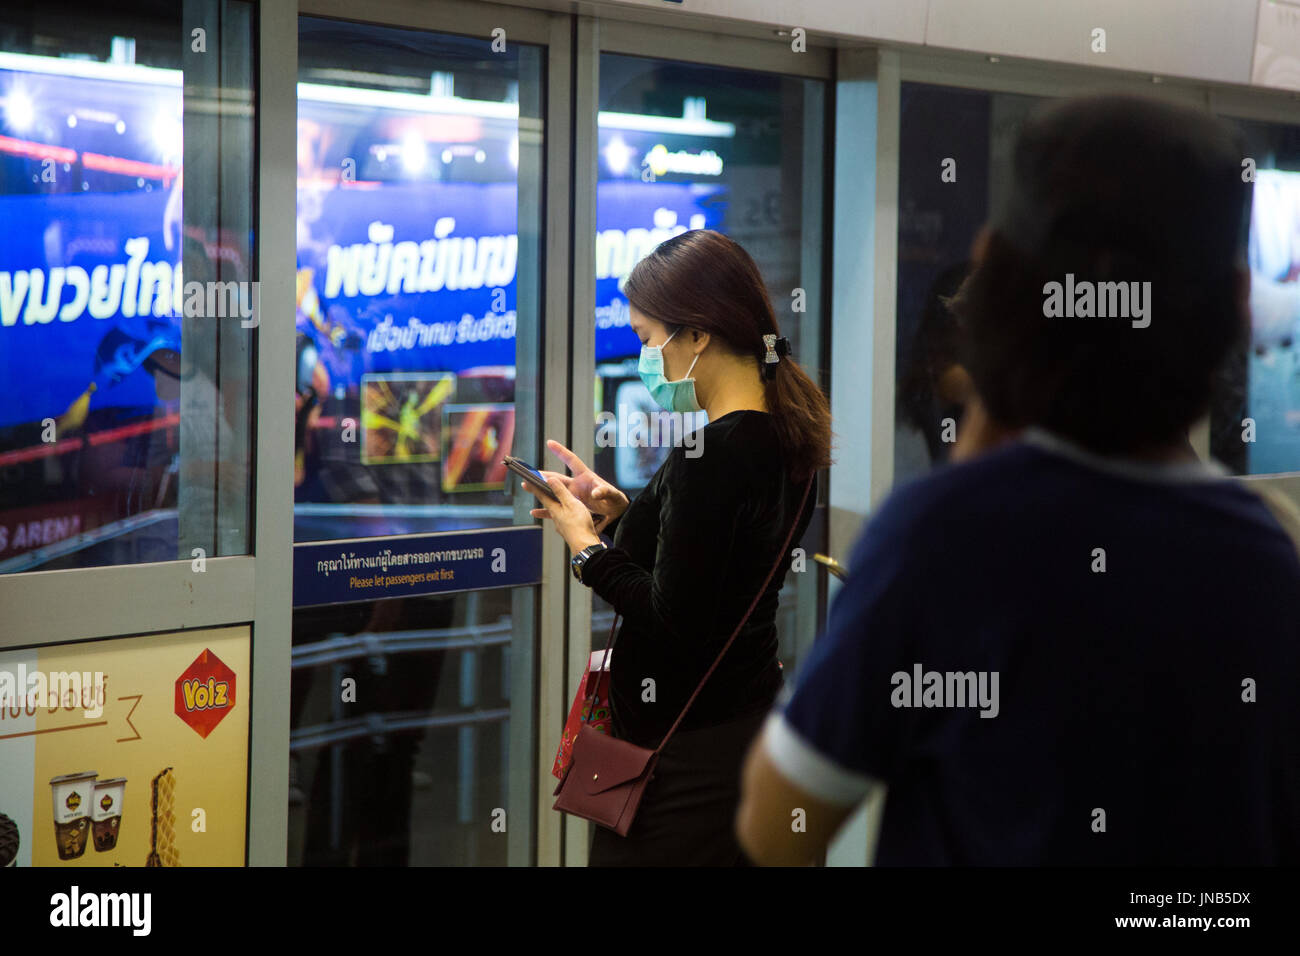 Woman on her mobile phone wearing an anti-pollution mask in the Bangkok subway, Thailand - Stock Image